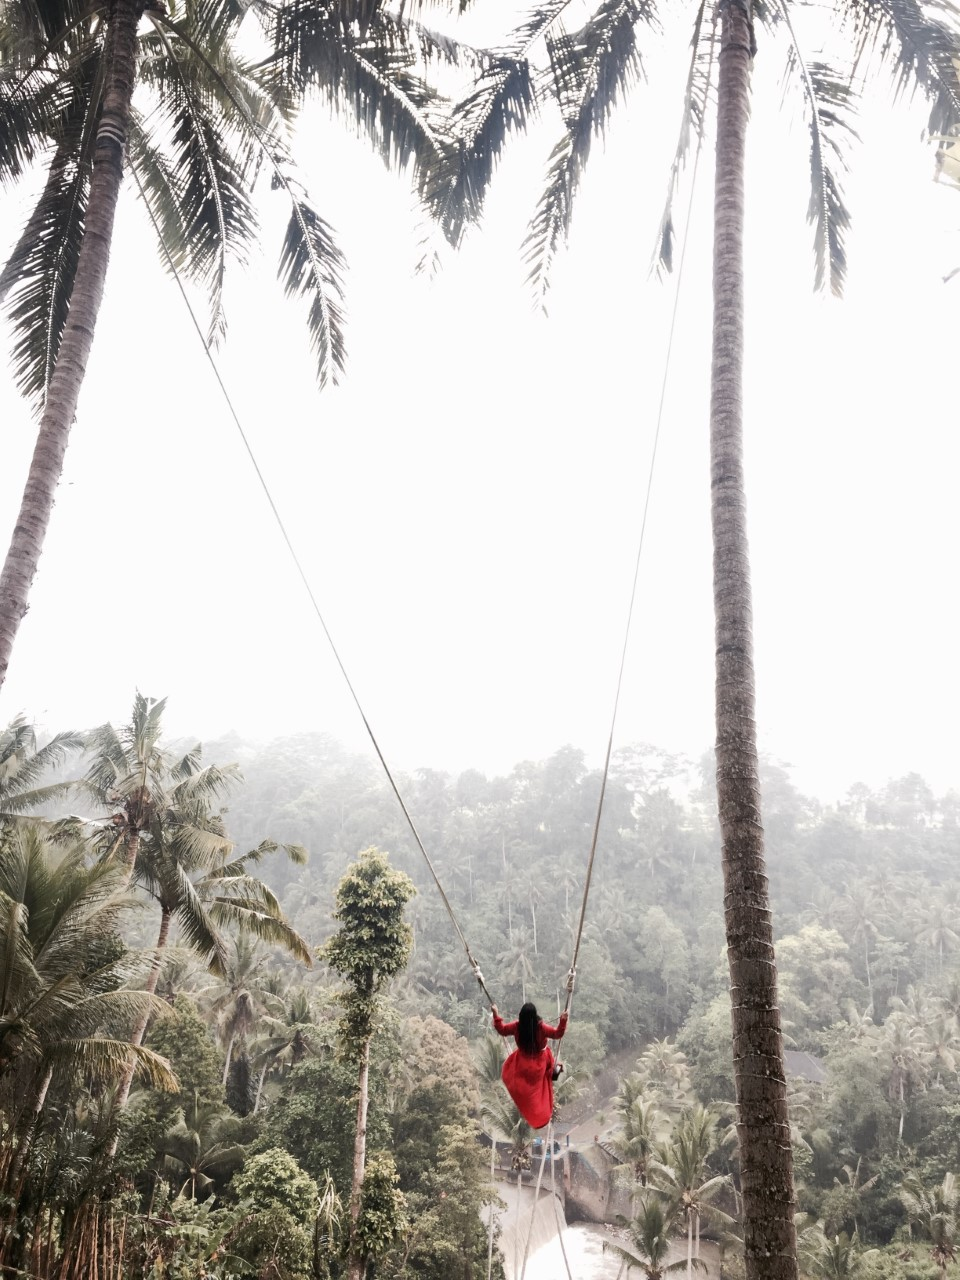 BALI SWING - Bali Swing have five single swings, tandem swing, two cute nests and a stone to take pictures over the edge above the valley with an amazing view on the canyon and waterfall.A thrilling experience with amazing pictures! A MUST WHEN IN BALI!